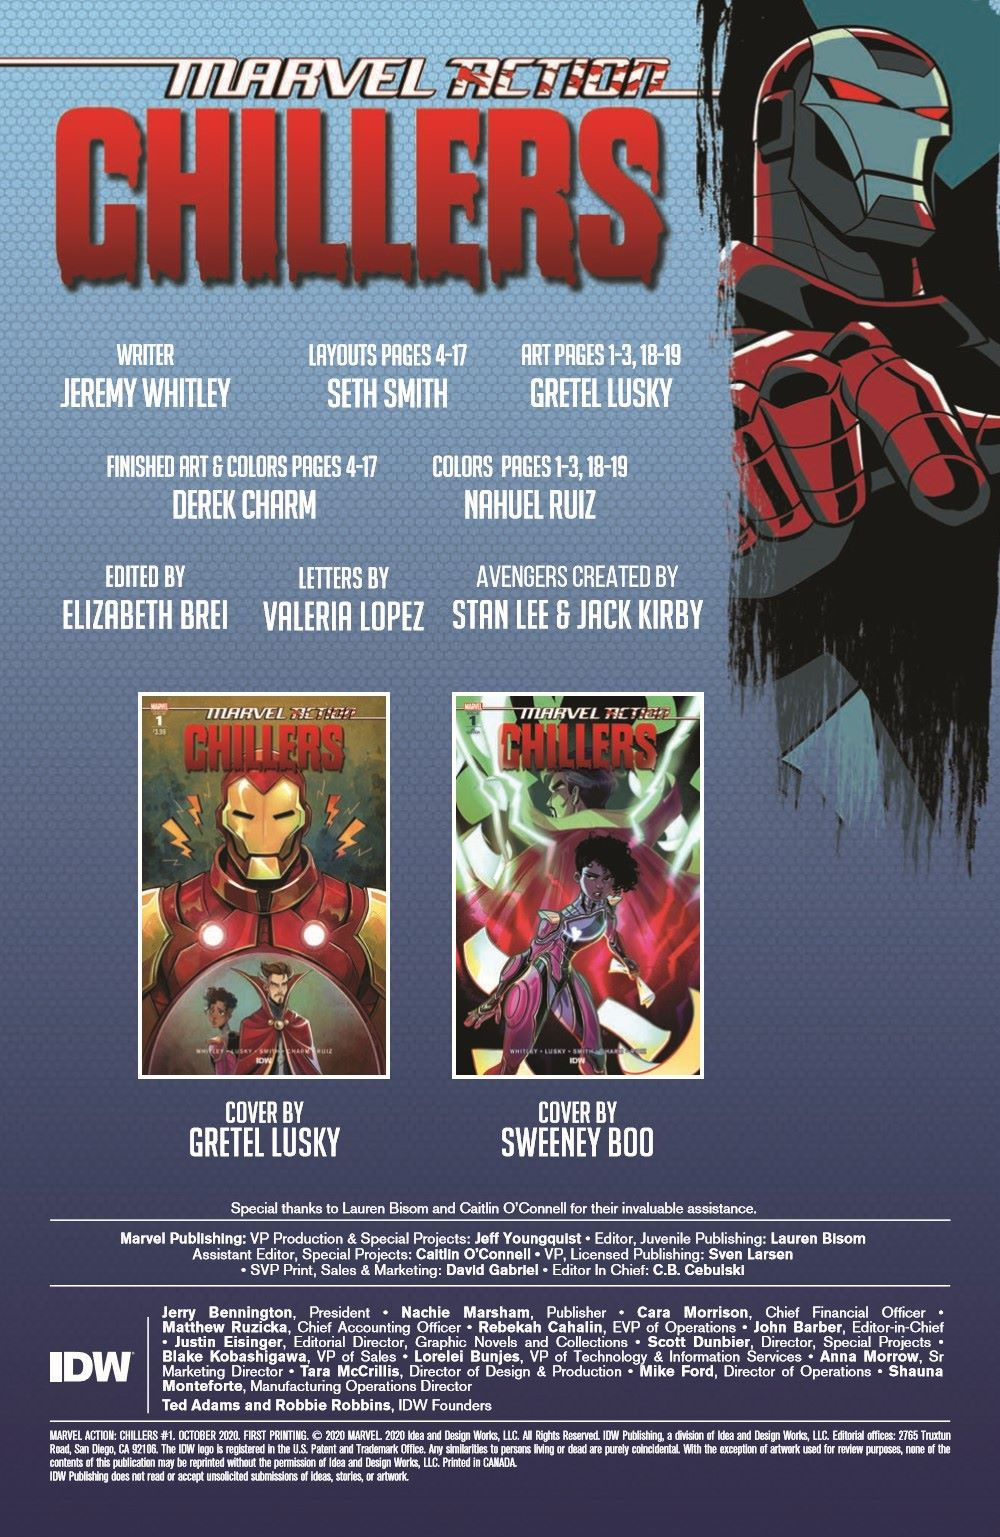 Marvel_Chillers_01_pr-2 ComicList Previews: MARVEL ACTION CHILLERS #1